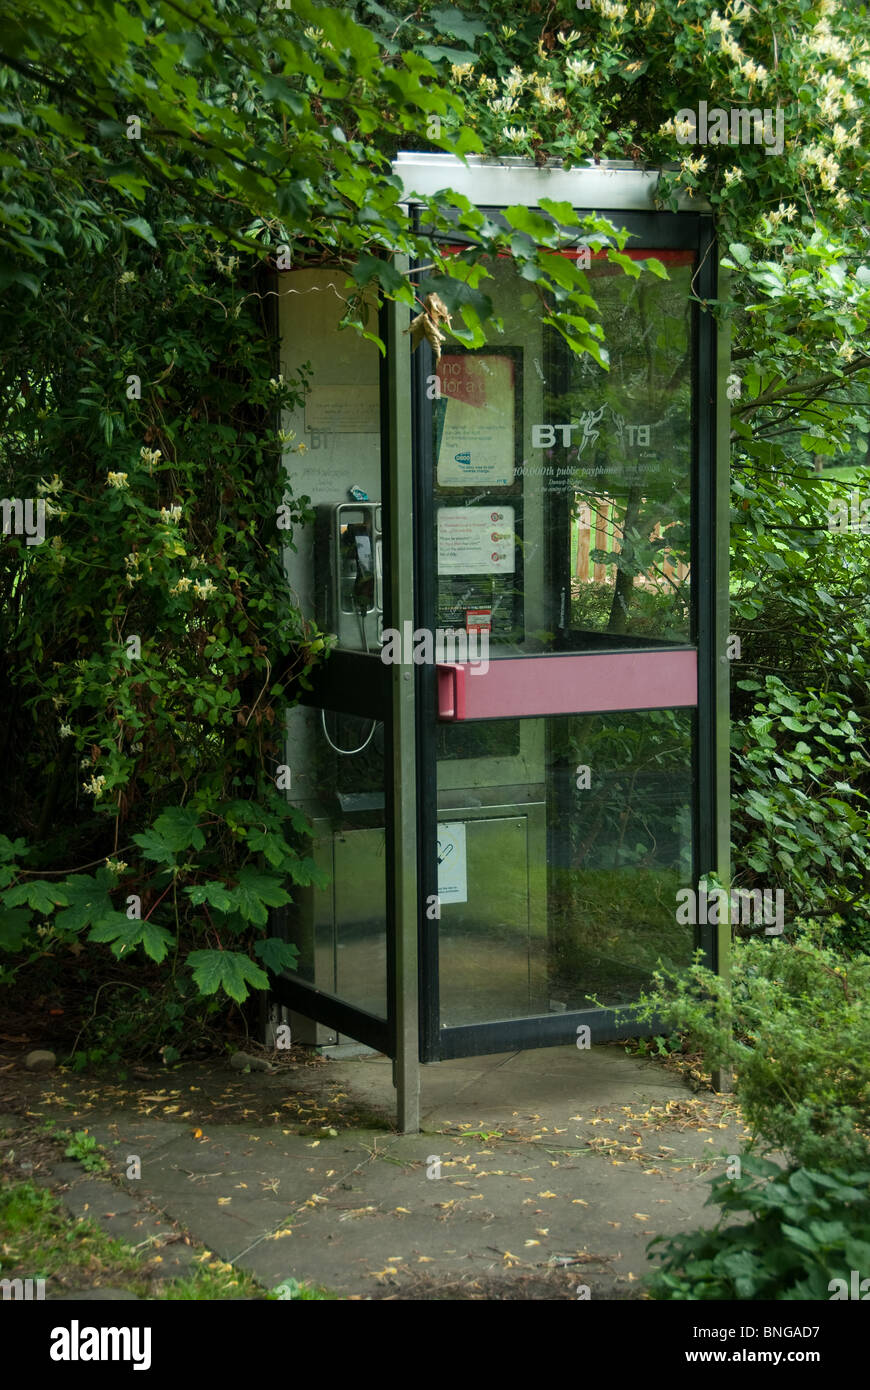 Telephone booth in Dunsop Bridge, Lancashire, said to be the centre point of the United Kingdom - Stock Image